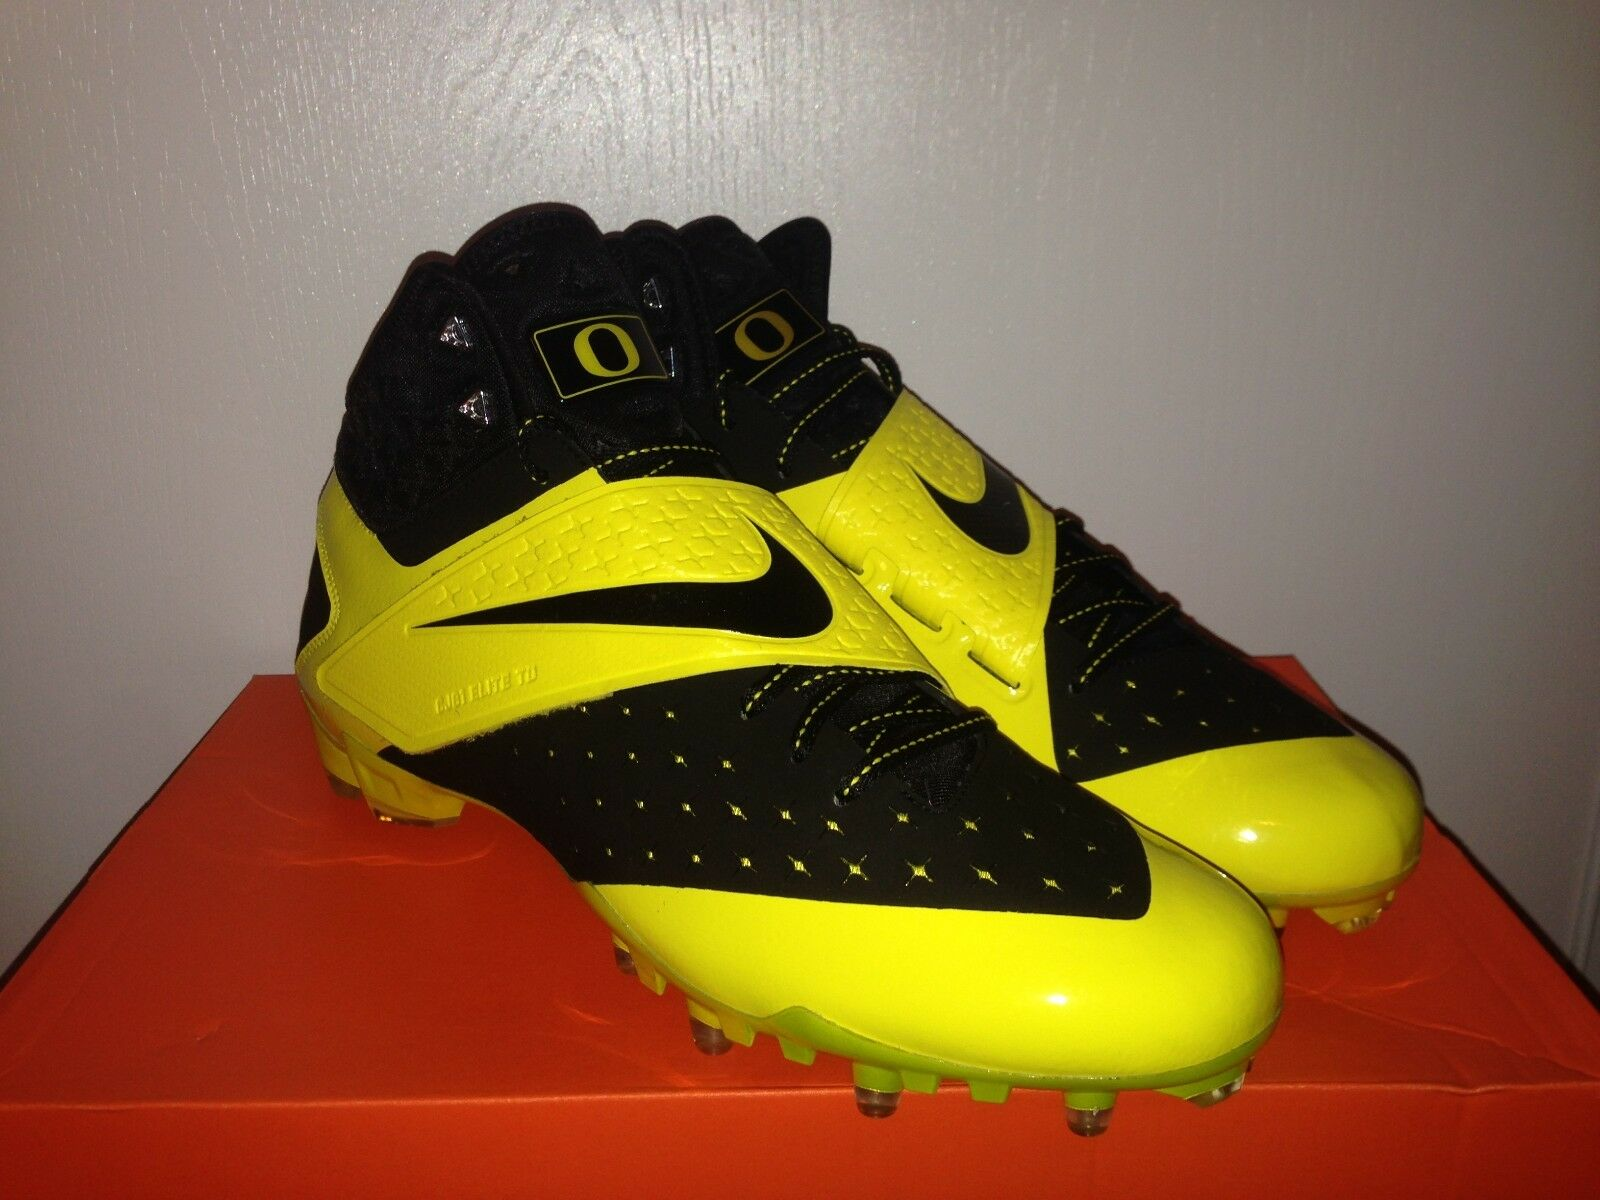 Nike Oregon Ducks CJ81 Elite TD Issued Player Exclusive PE Rare Cleats Clr SZ 13